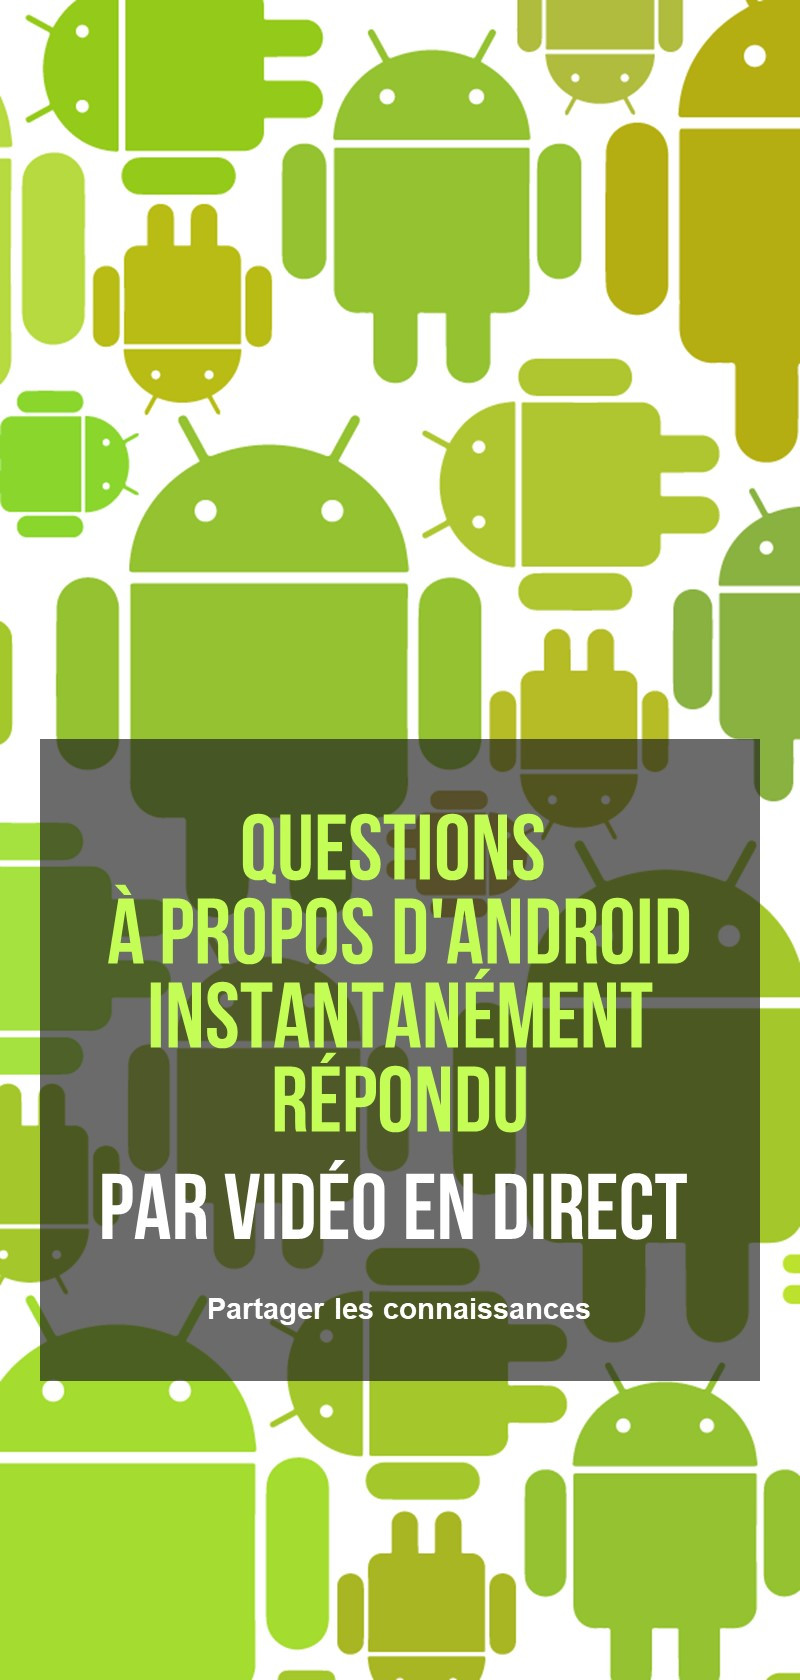 Questions sur Android